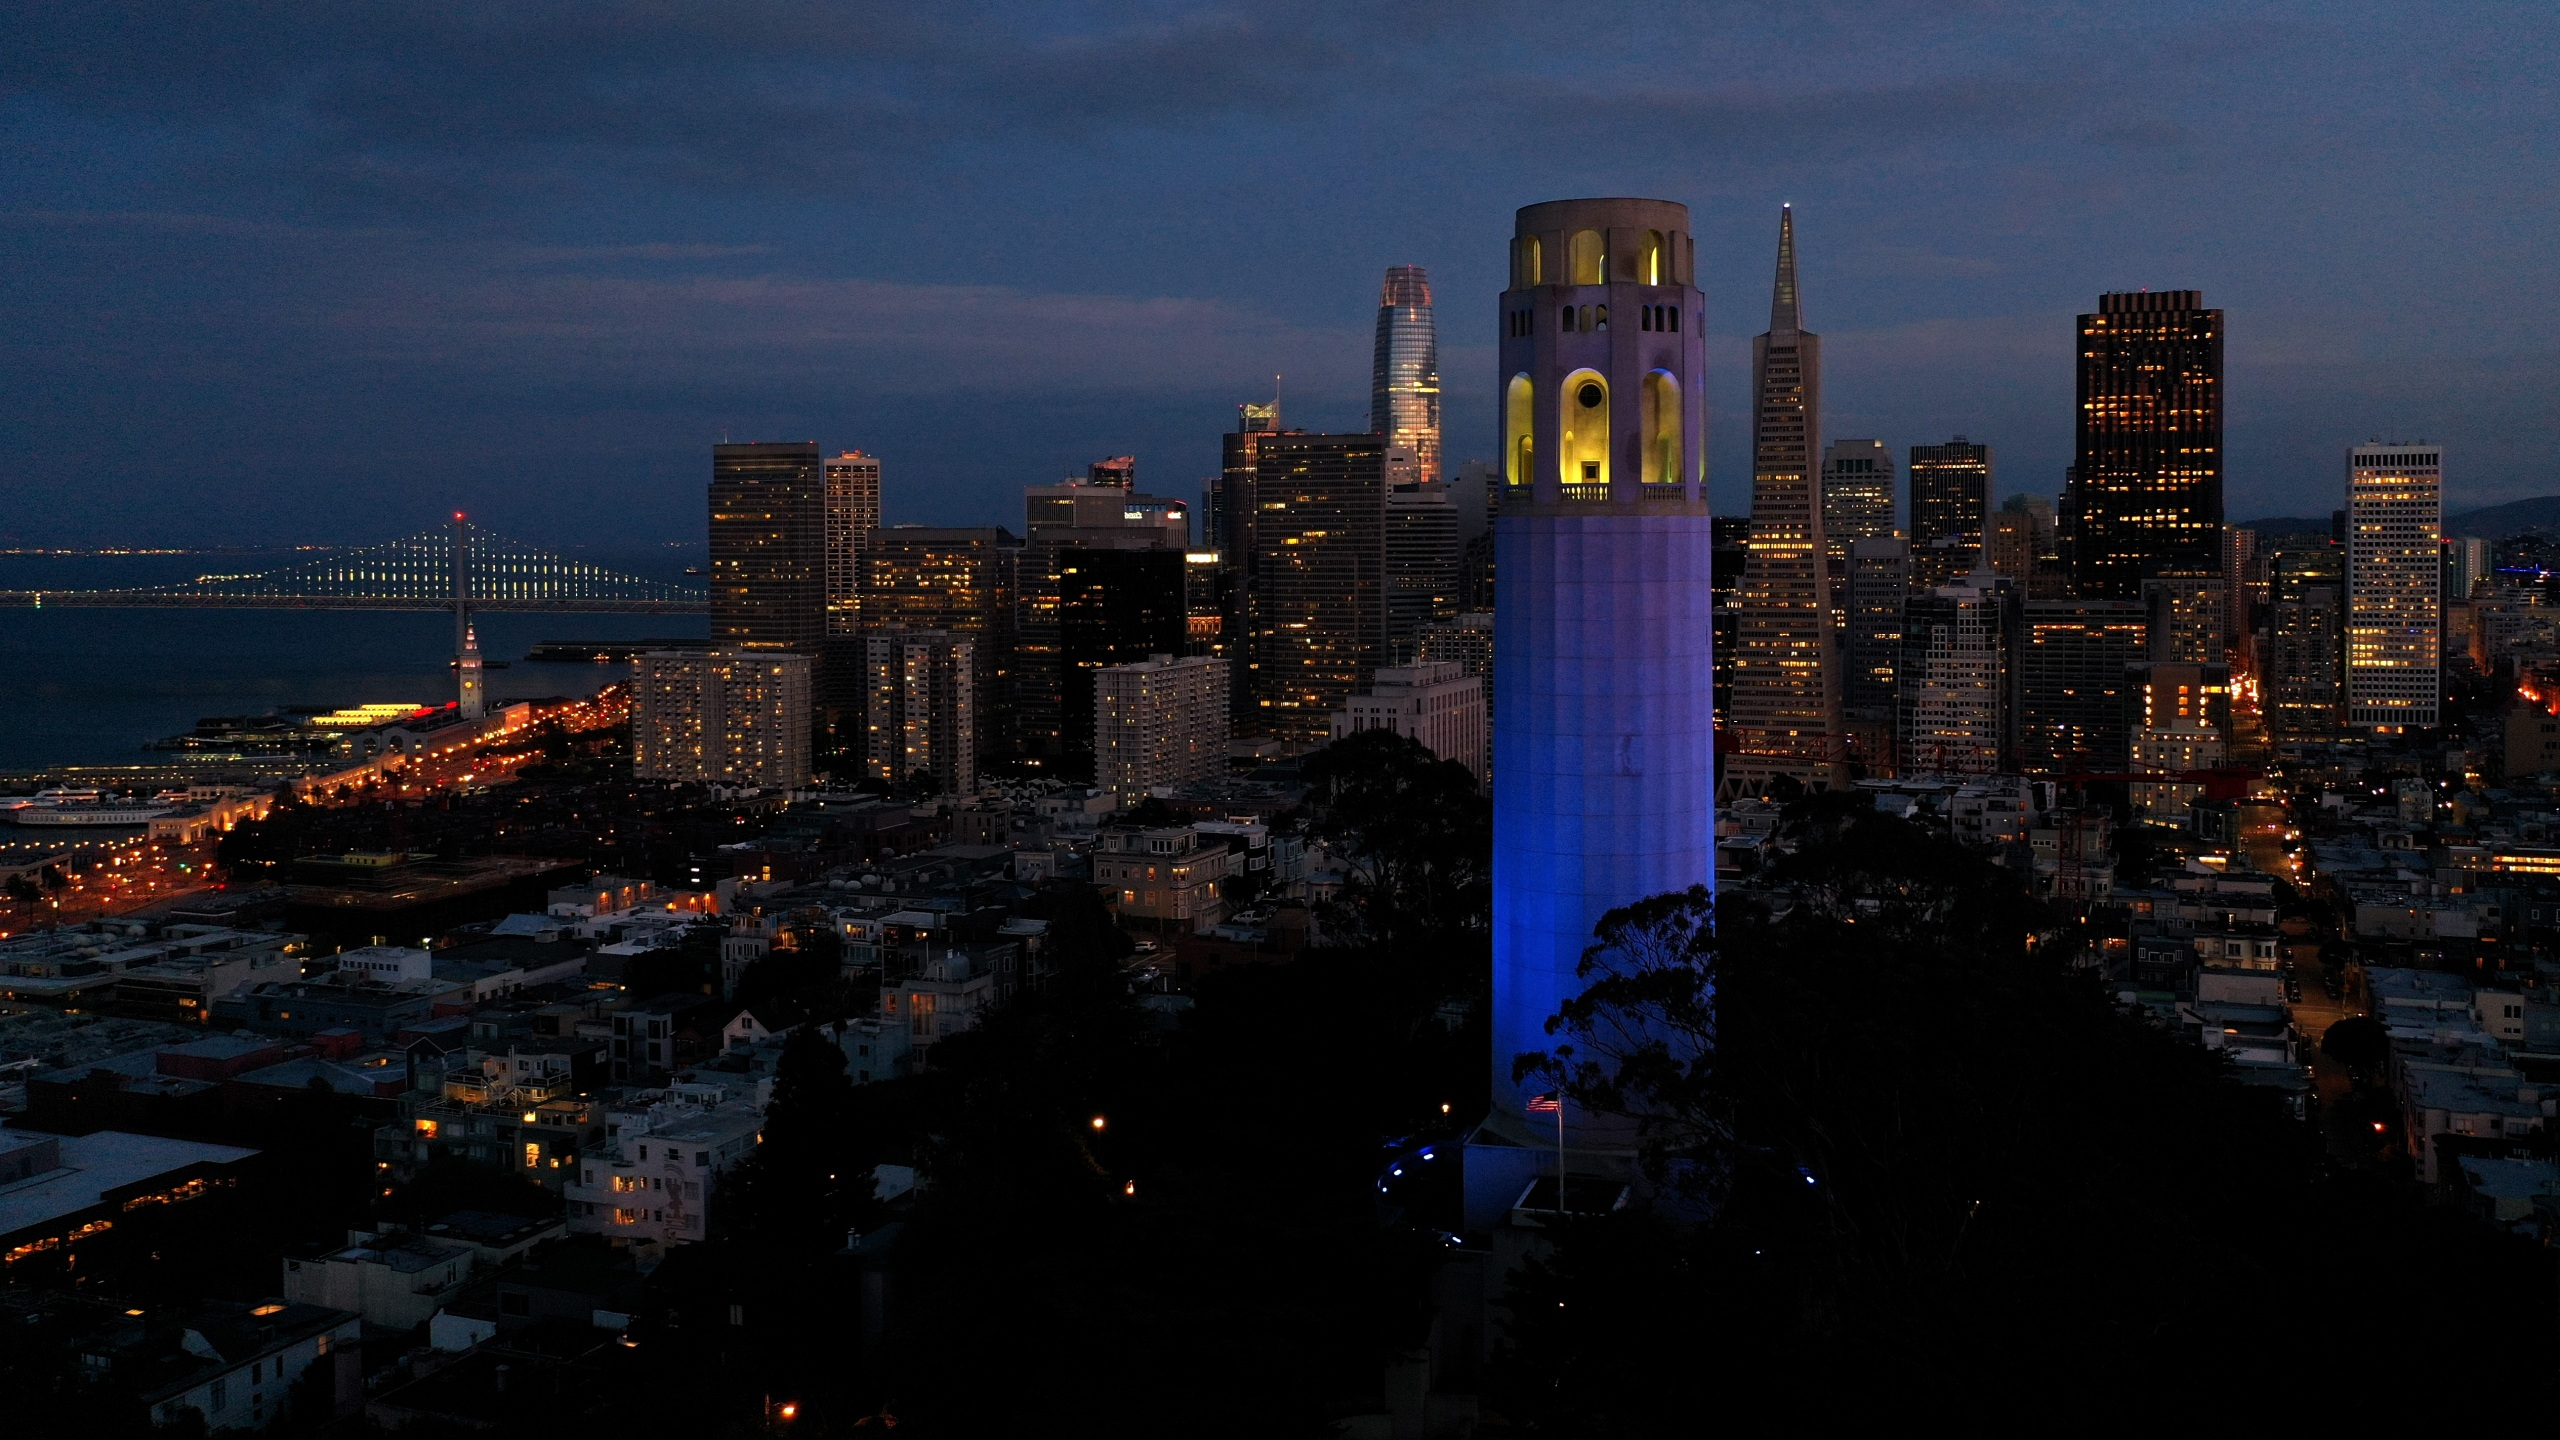 Coit Tower is lit up blue on April 9, 2020 in San Francisco. Landmarks and buildings across the nation are displaying blue lights to show support for health care workers and first responders on the front lines of the COVID-19 pandemic. (Justin Sullivan/Getty Images)